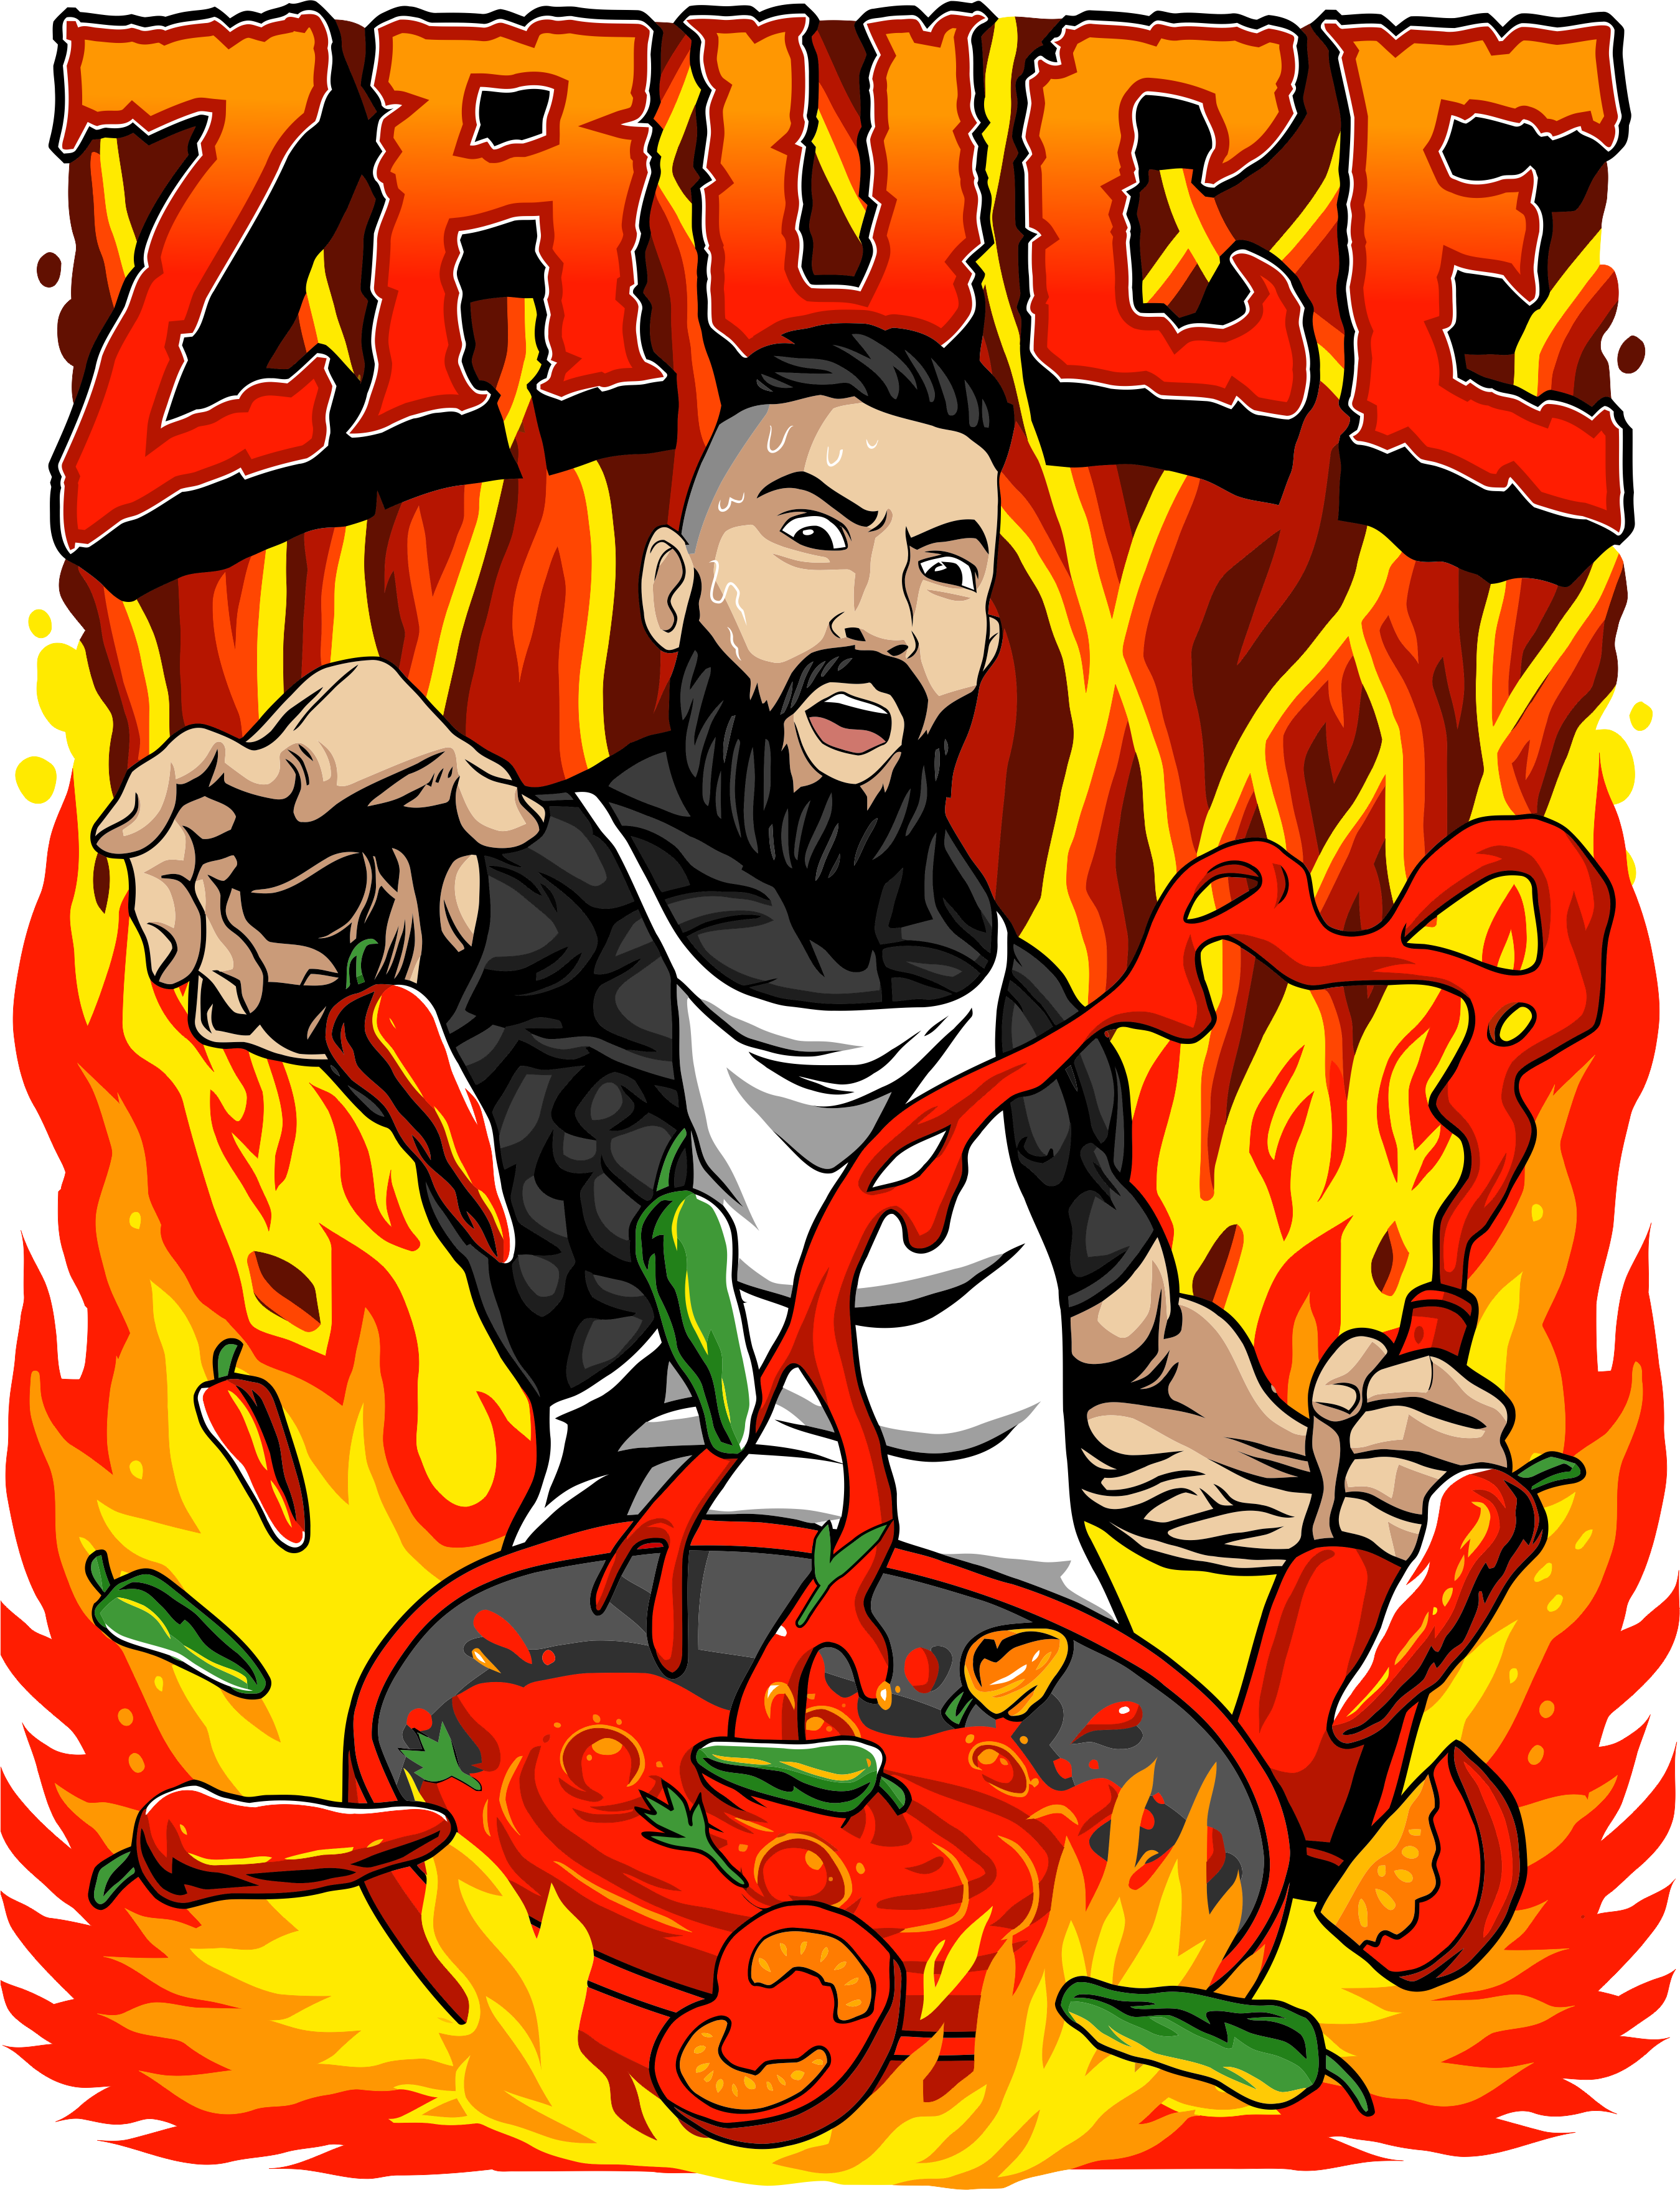 HOT ZAUCE! Let's Spice Things Up For A FIERY HOT Design